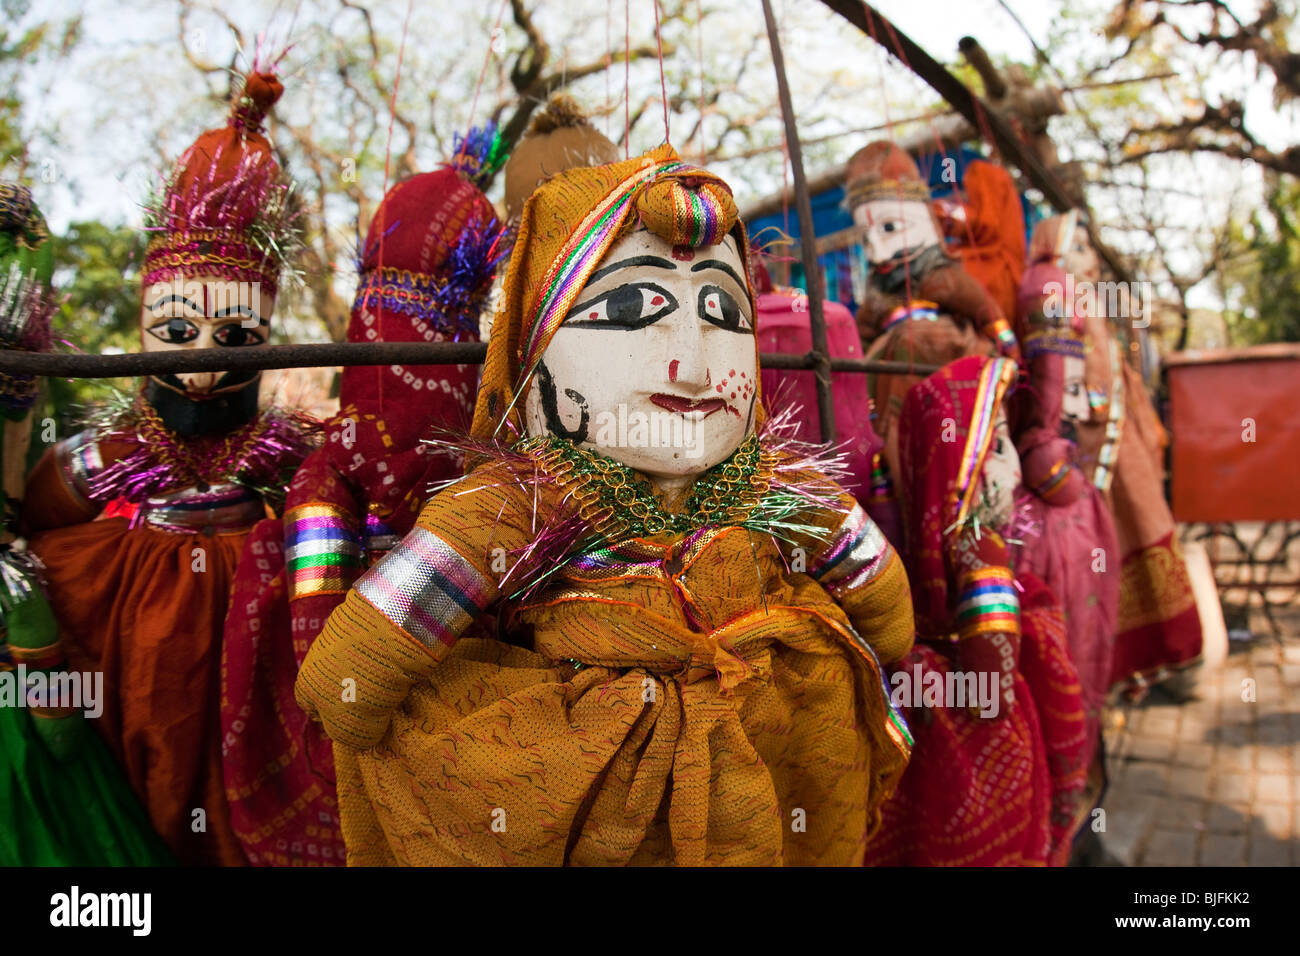 India, Kerala, Kochi, Fort Cochin, inexpensive souvenir puppets displayed for sale - Stock Image